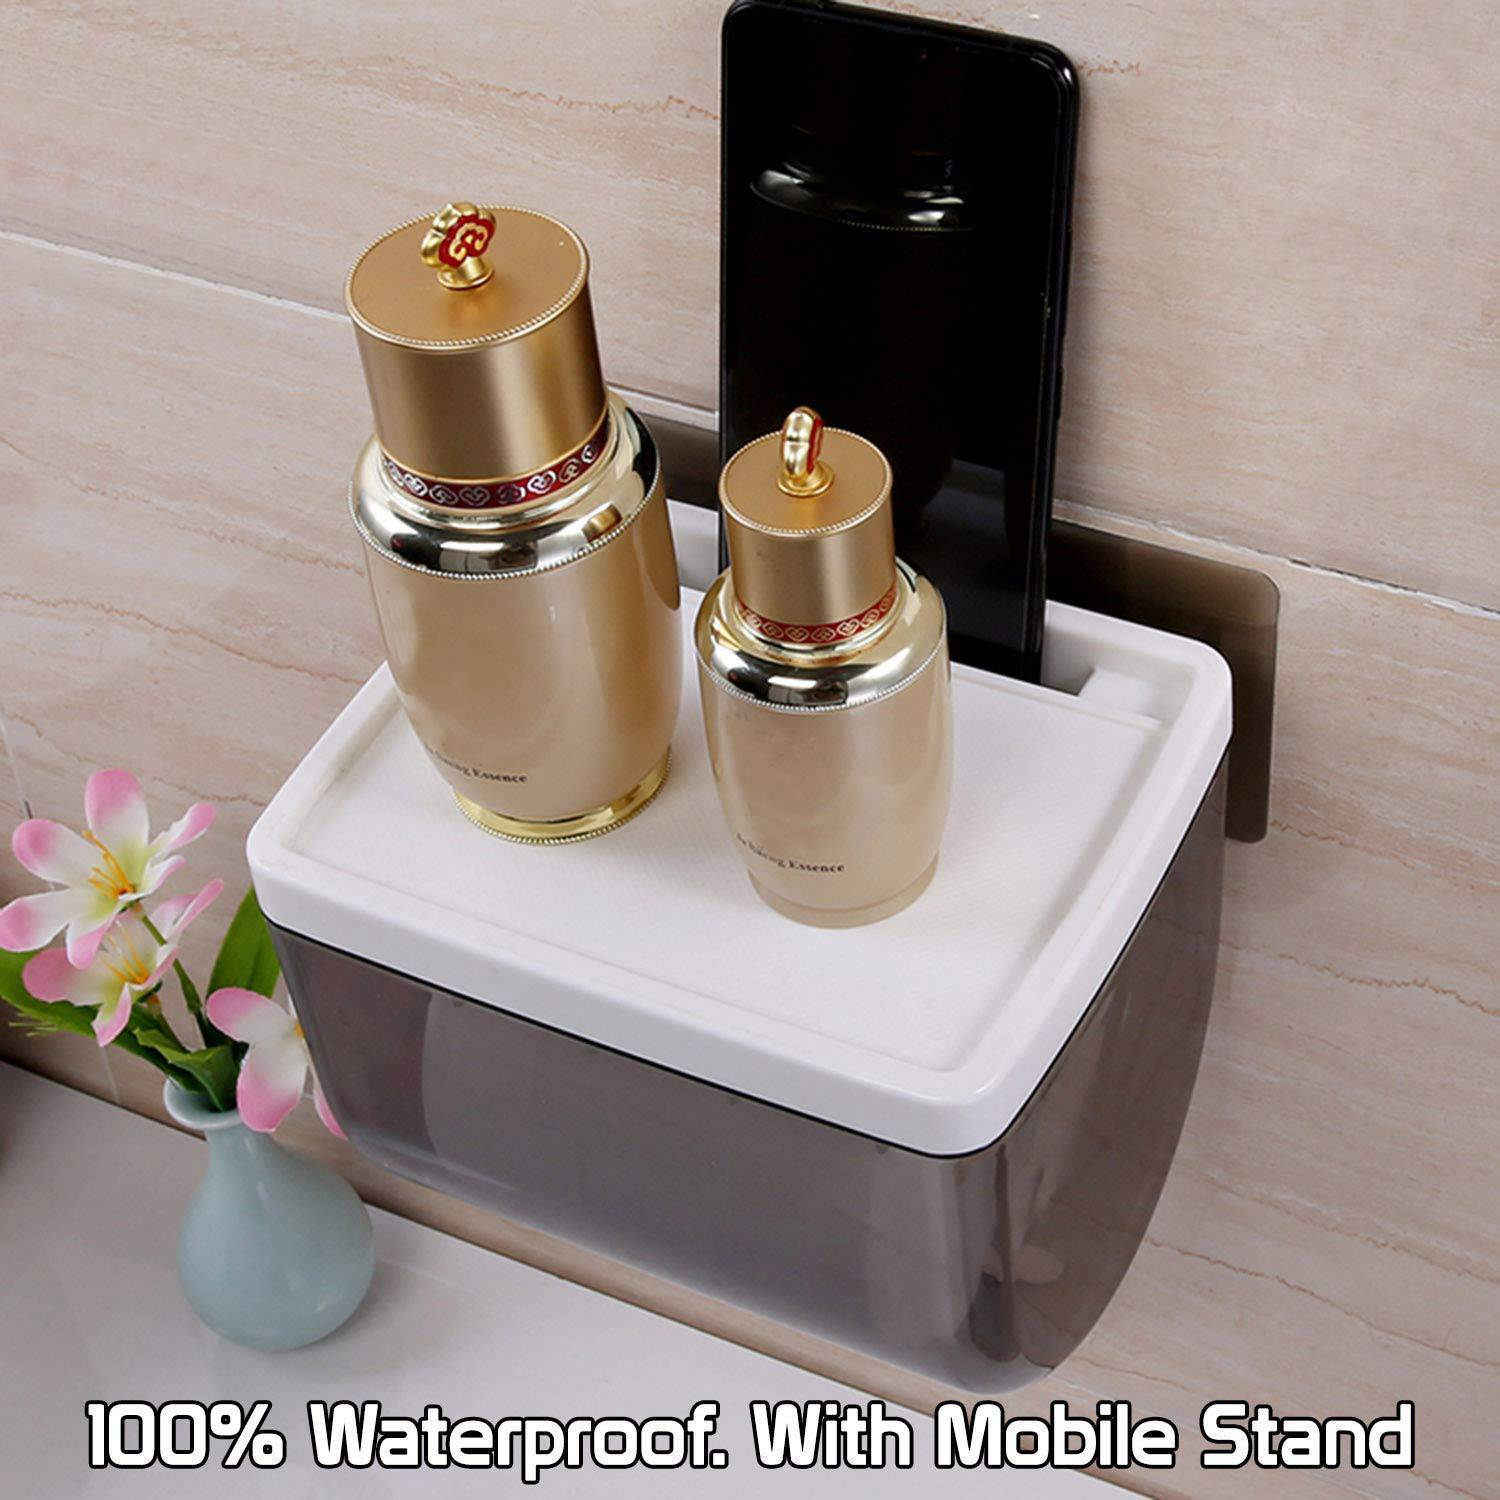 AND008555. Toilet Paper Holder with Mobile Stand